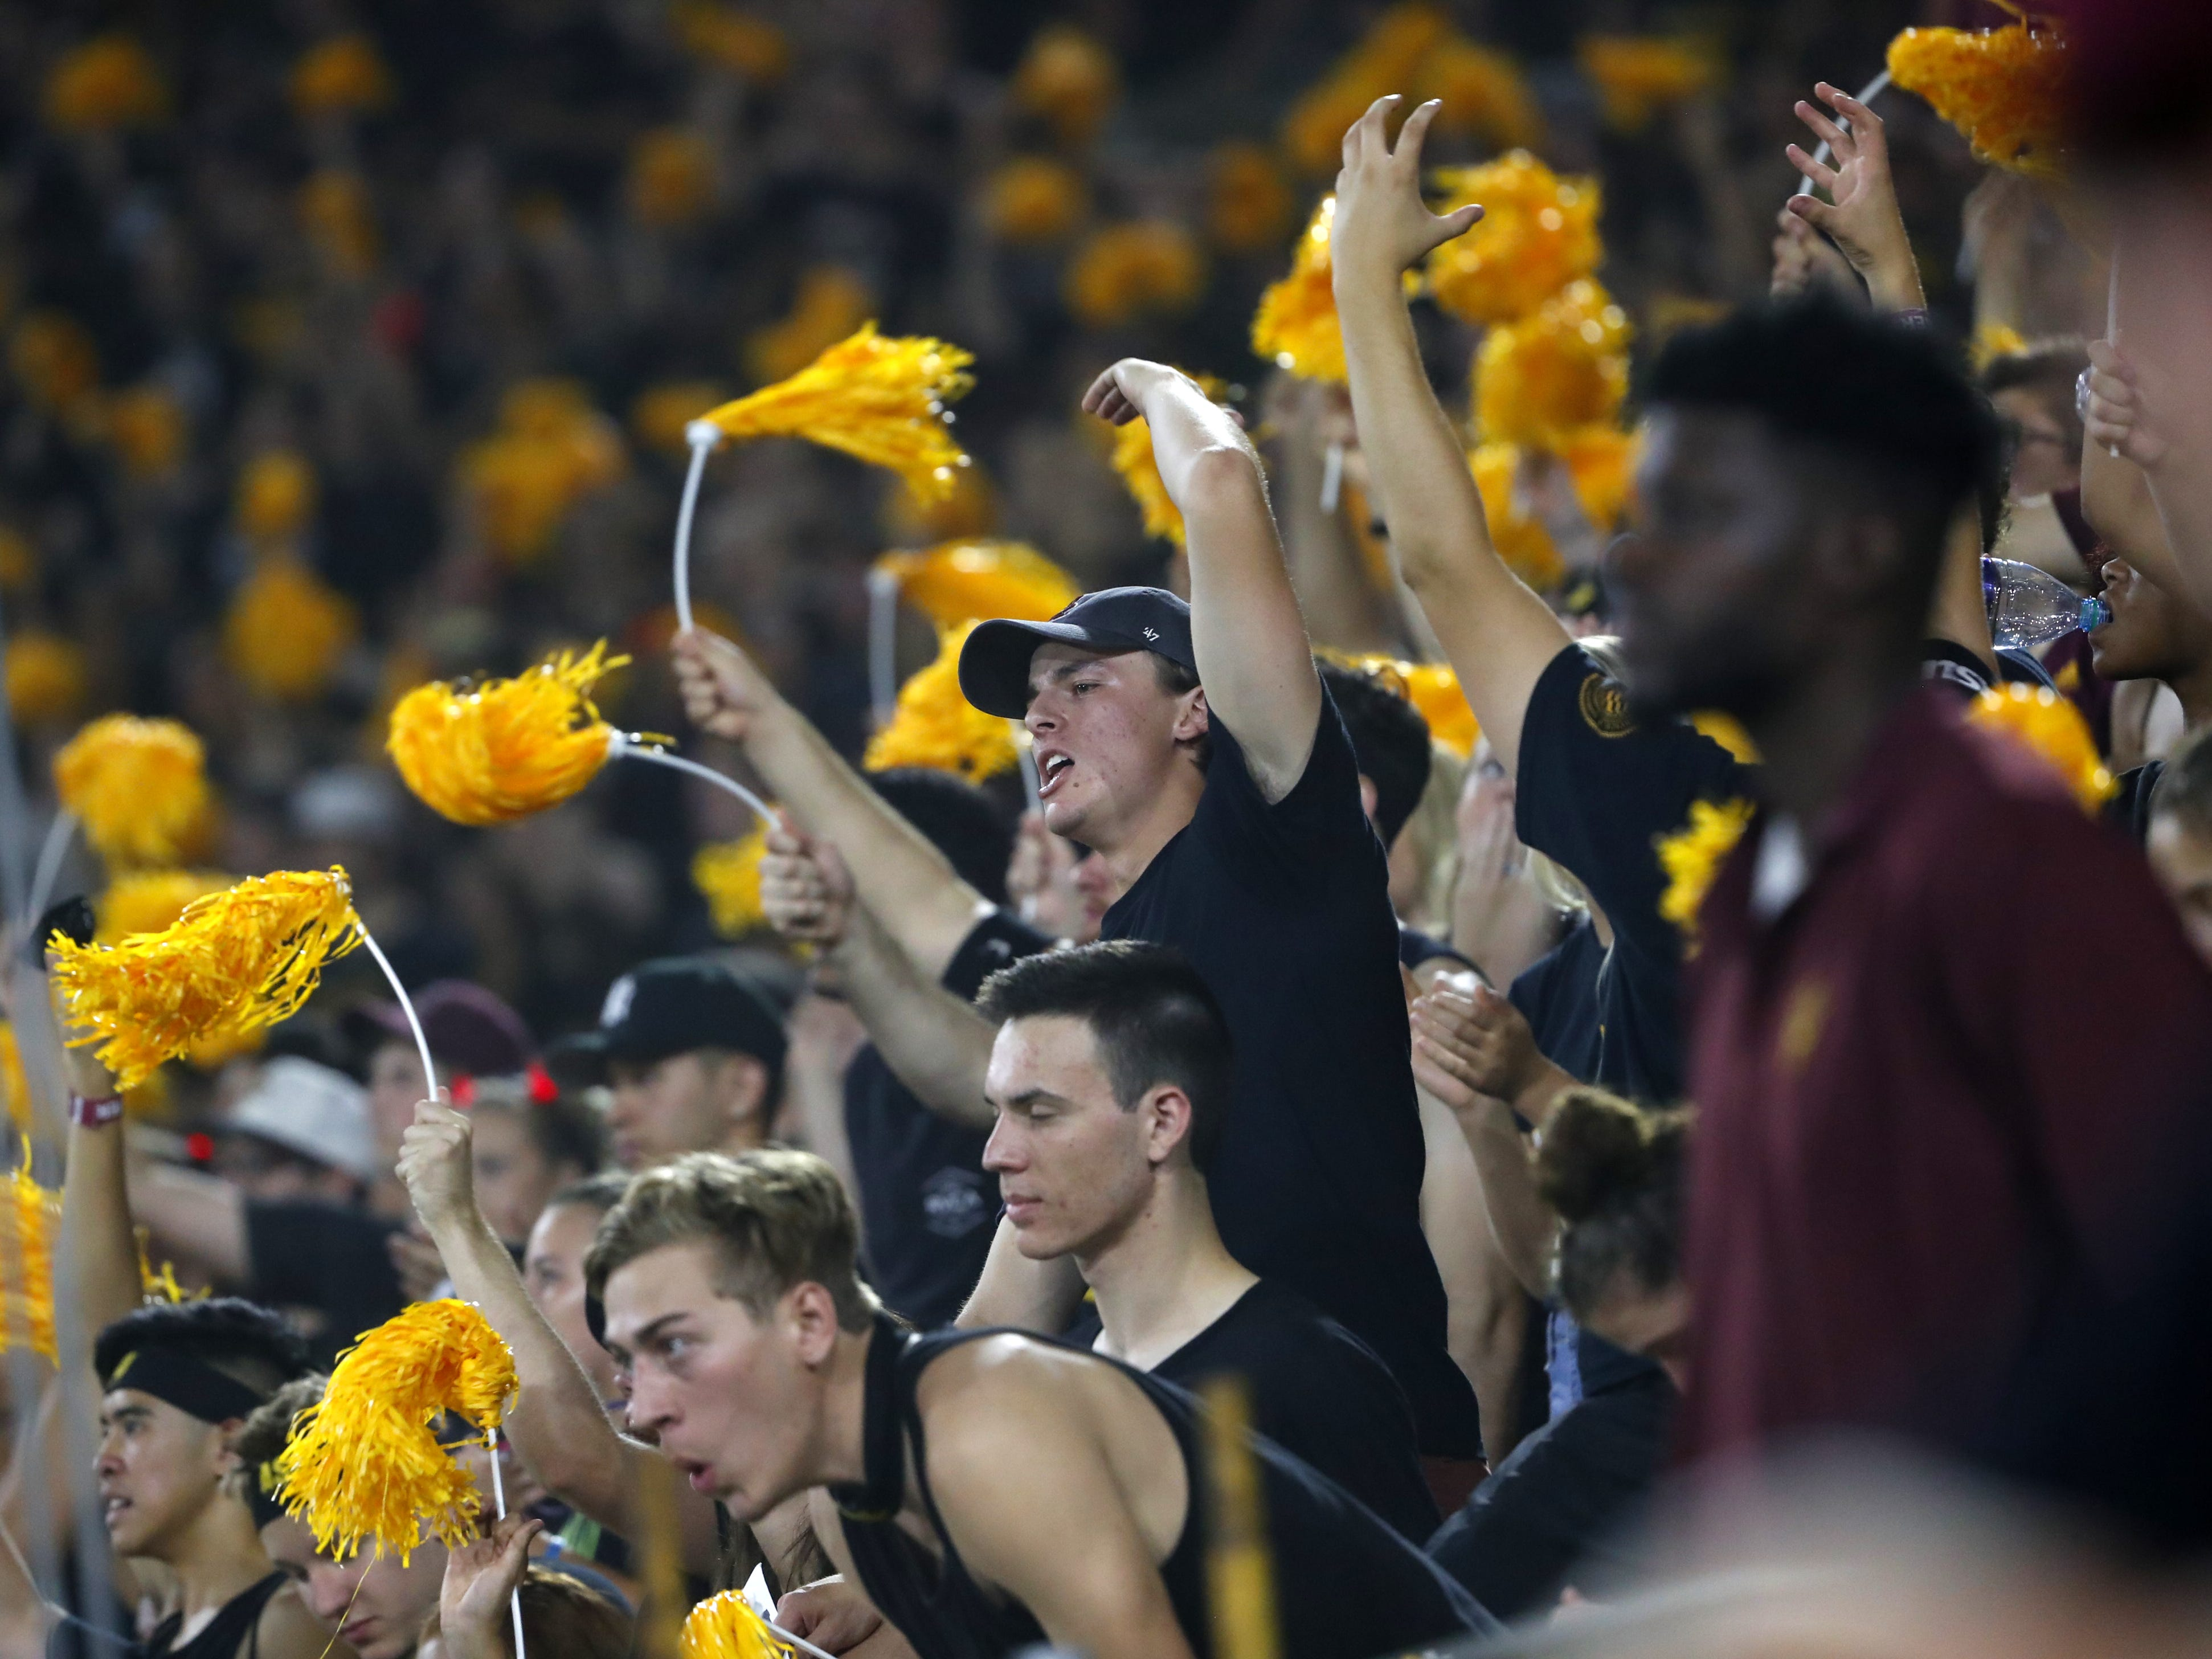 ASU fans cheer on their team during the third quarter at Sun Devil Stadium in Tempe, Ariz. on Sept. 8, 2018.